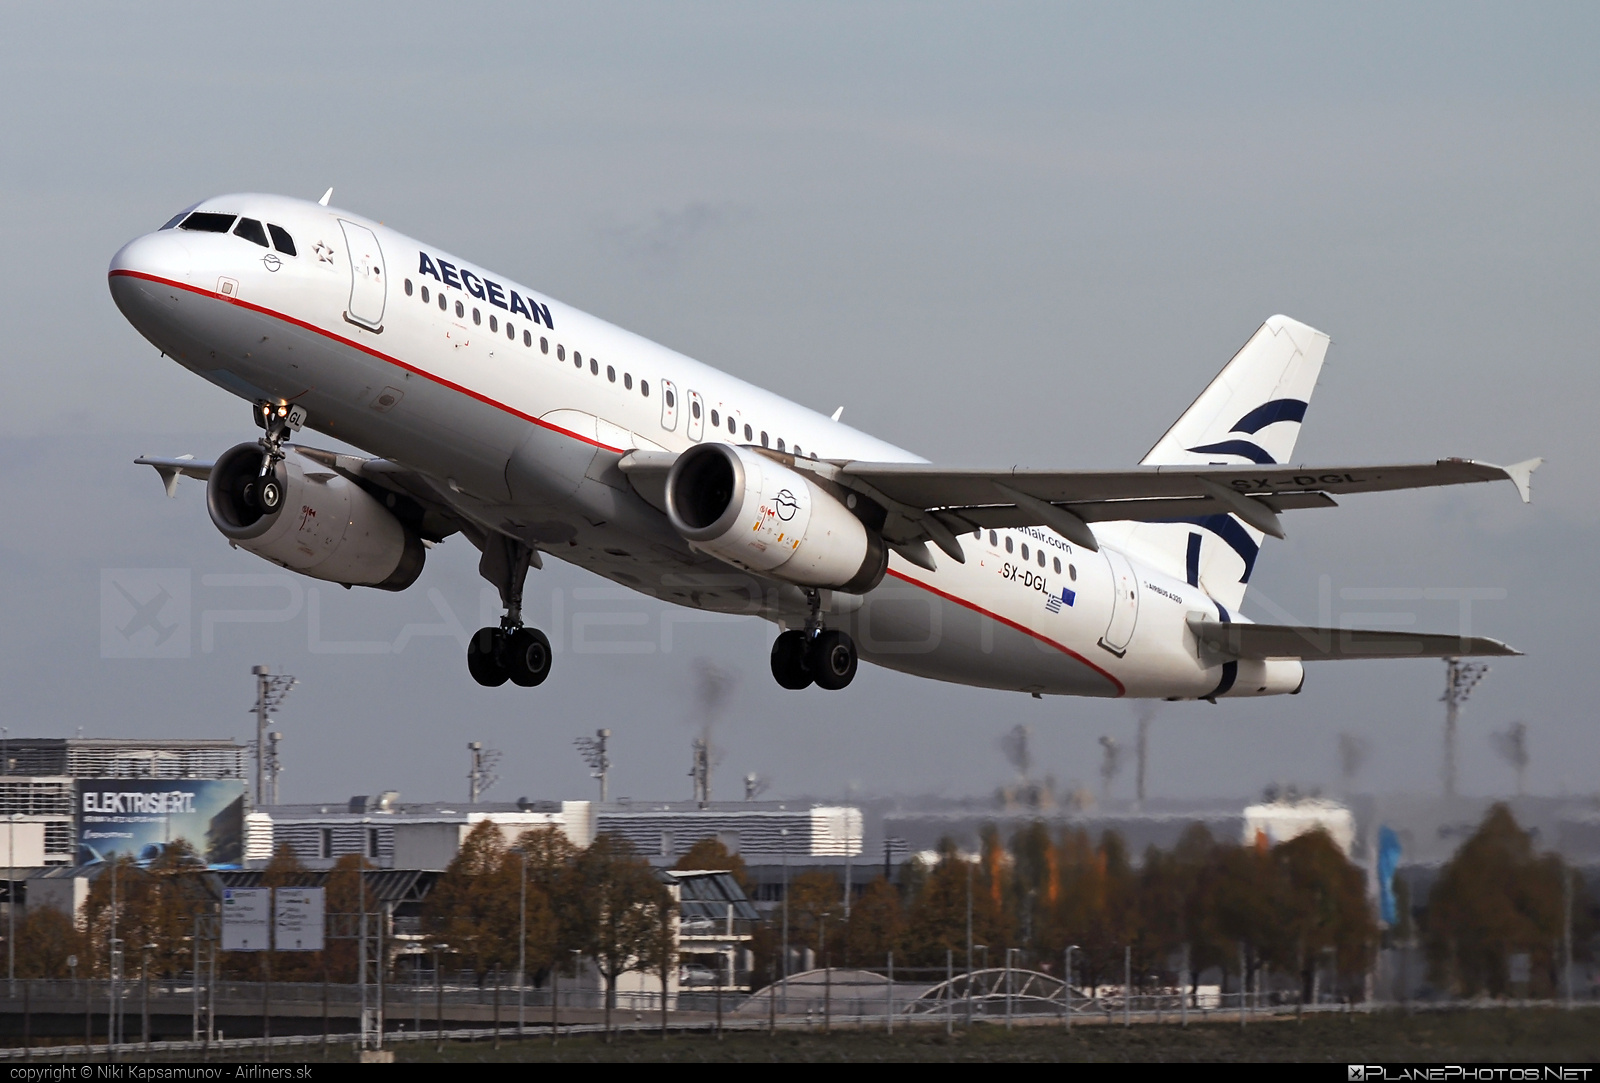 Airbus A320-232 - SX-DGL operated by Aegean Airlines #a320 #a320family #airbus #airbus320